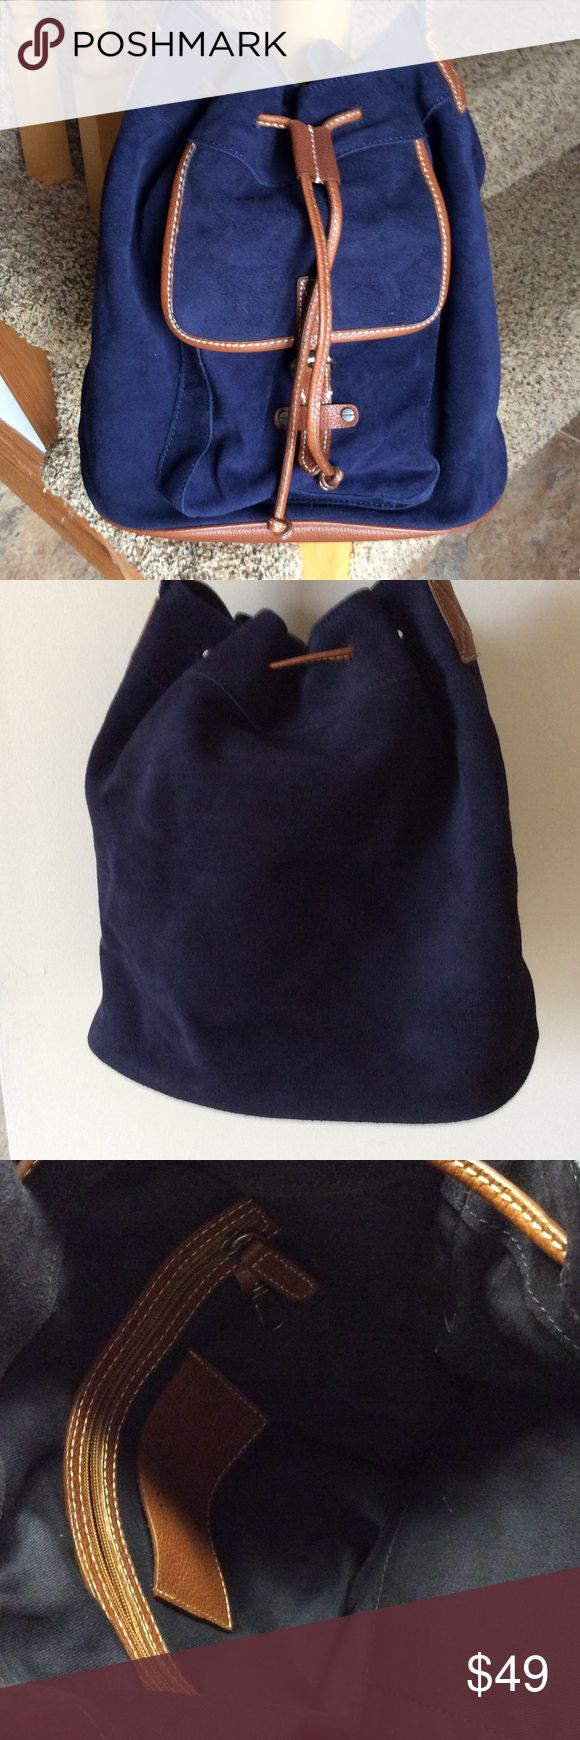 Lands End bag.  💙SALE💙 Beautiful navy suede with brown leather trim.  Very roomy crossbody bag.   Mesh and leather strap.  Front pocket with buckle closer.   Drawstring closet on bag.  Inside has two pouches and zip pocket.   Very clean.  EUC.  070404 Lands' End Bags Crossbody Bags